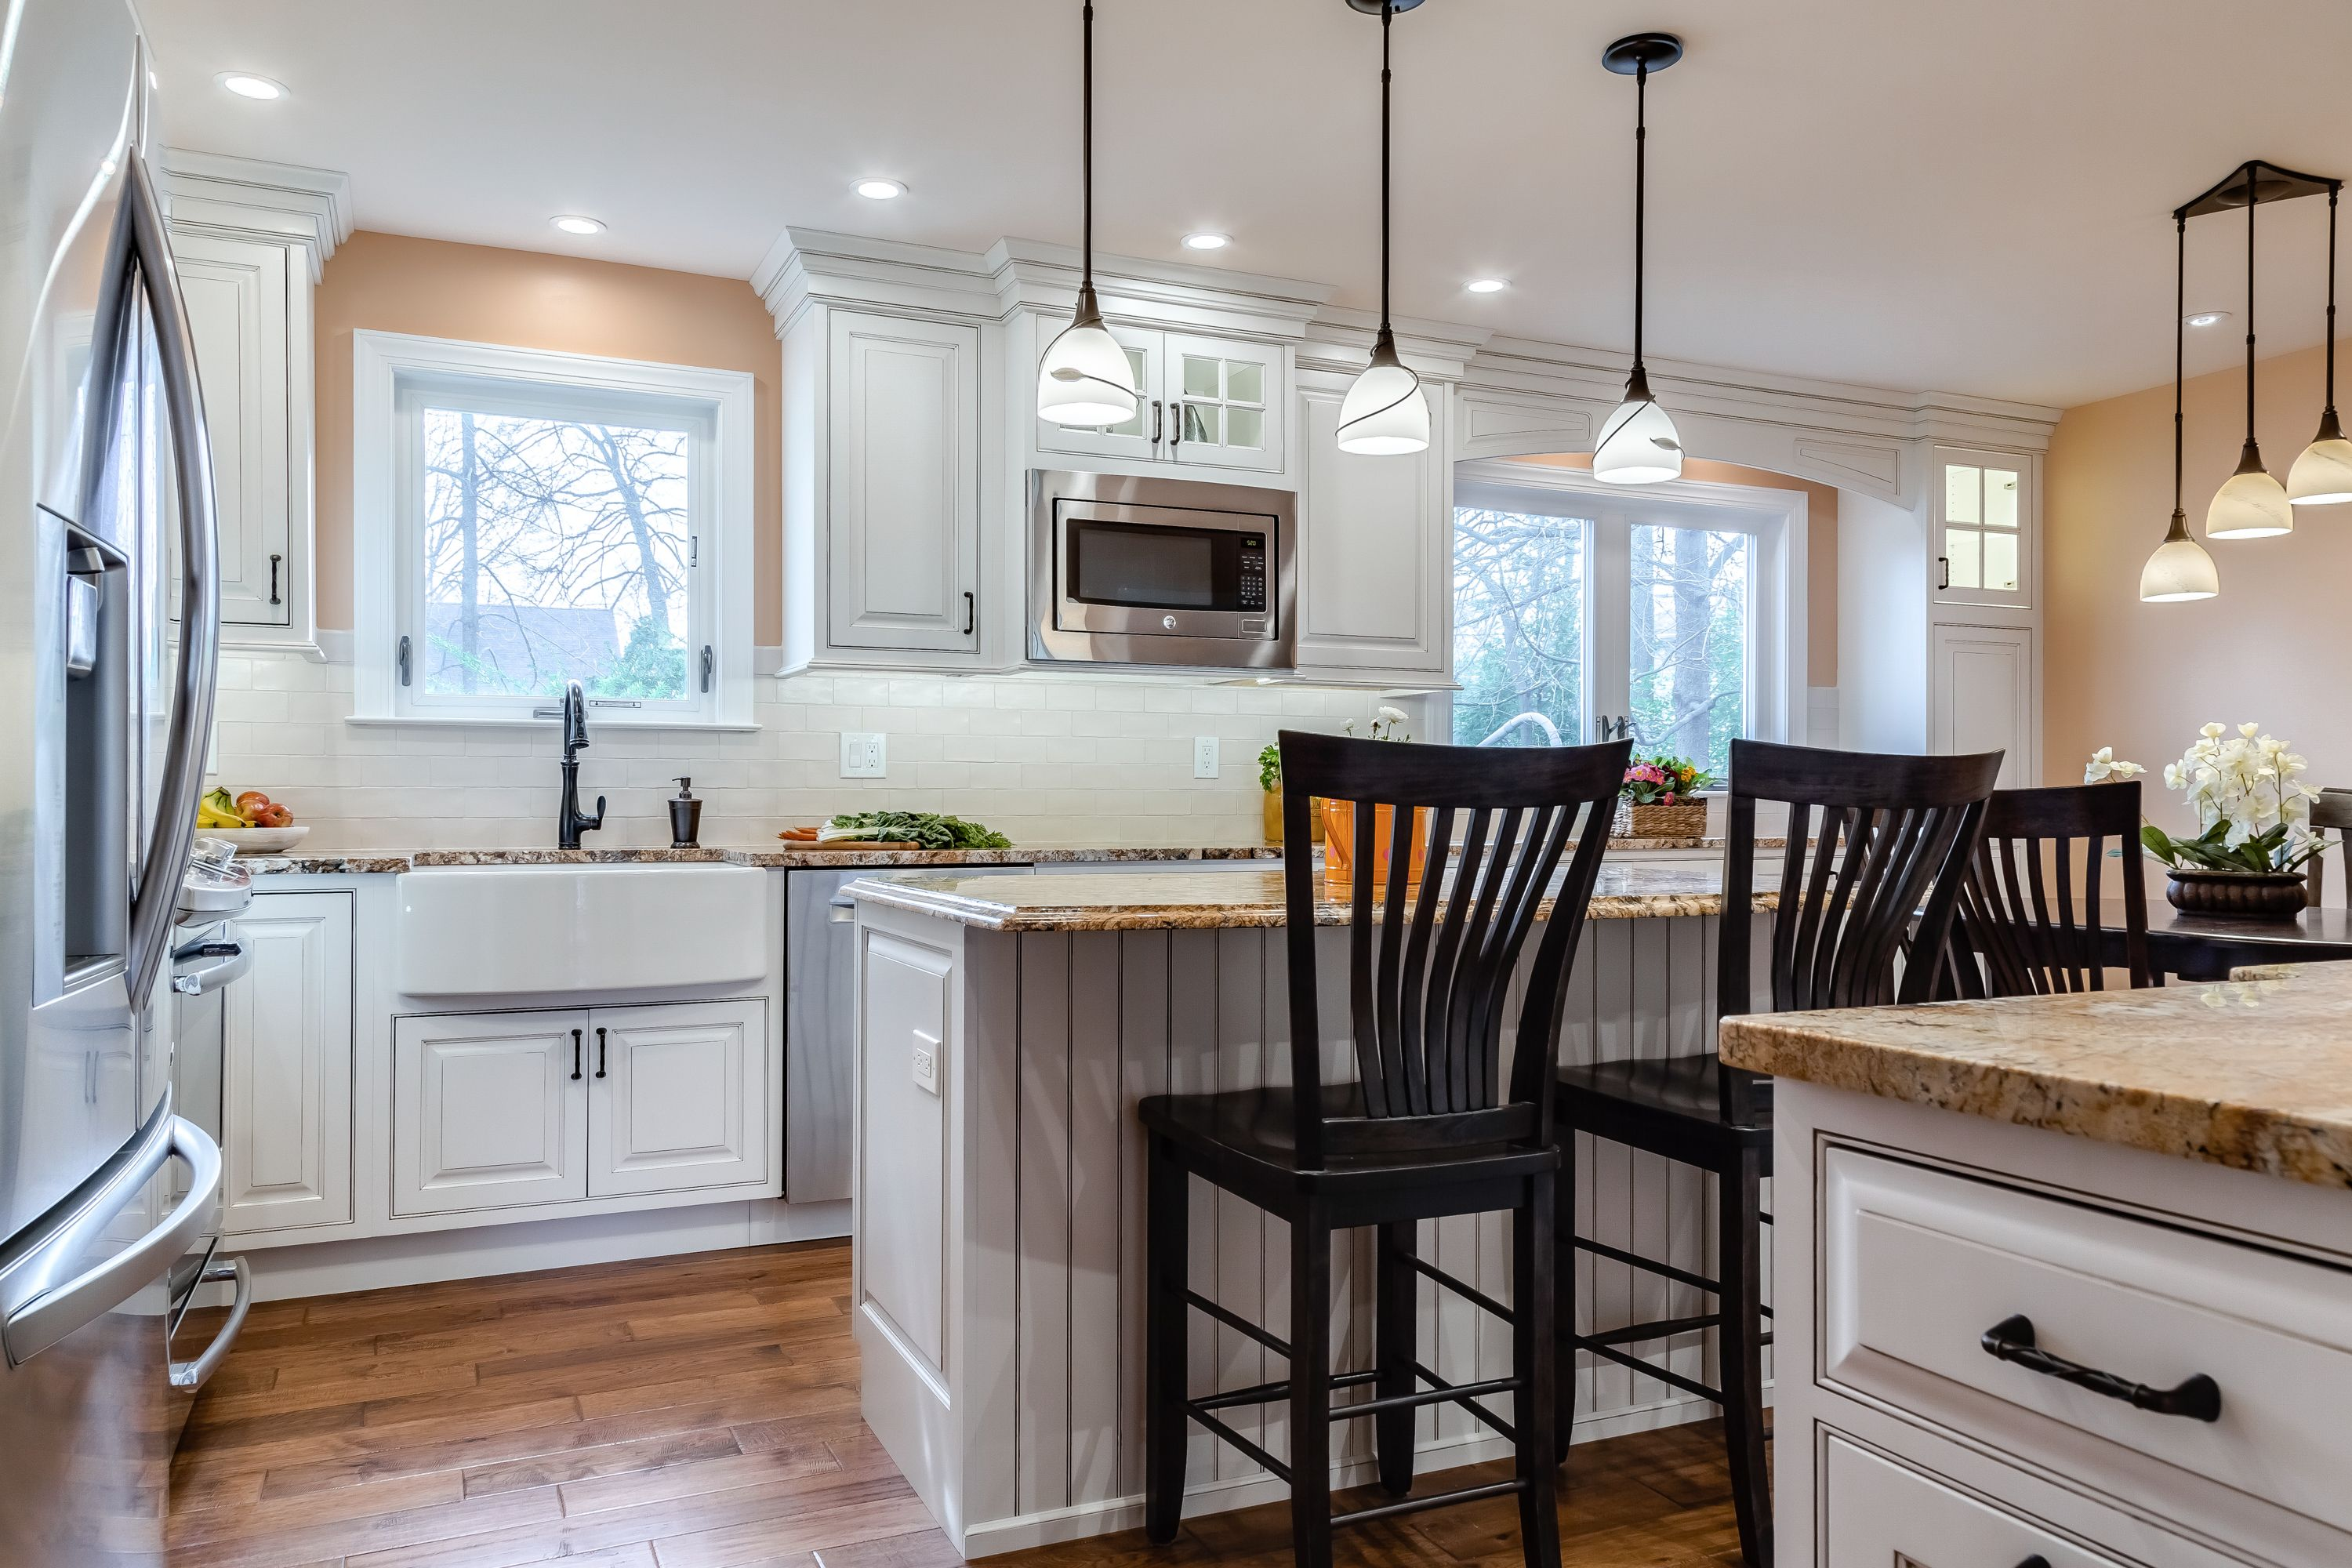 A Kitchen Remodel In Warminster Pennsylvania Was Designed With The Laorest Door Style In Maple Fin Kitchen Cabinets Decor Small Bathroom Decor Custom Kitchens